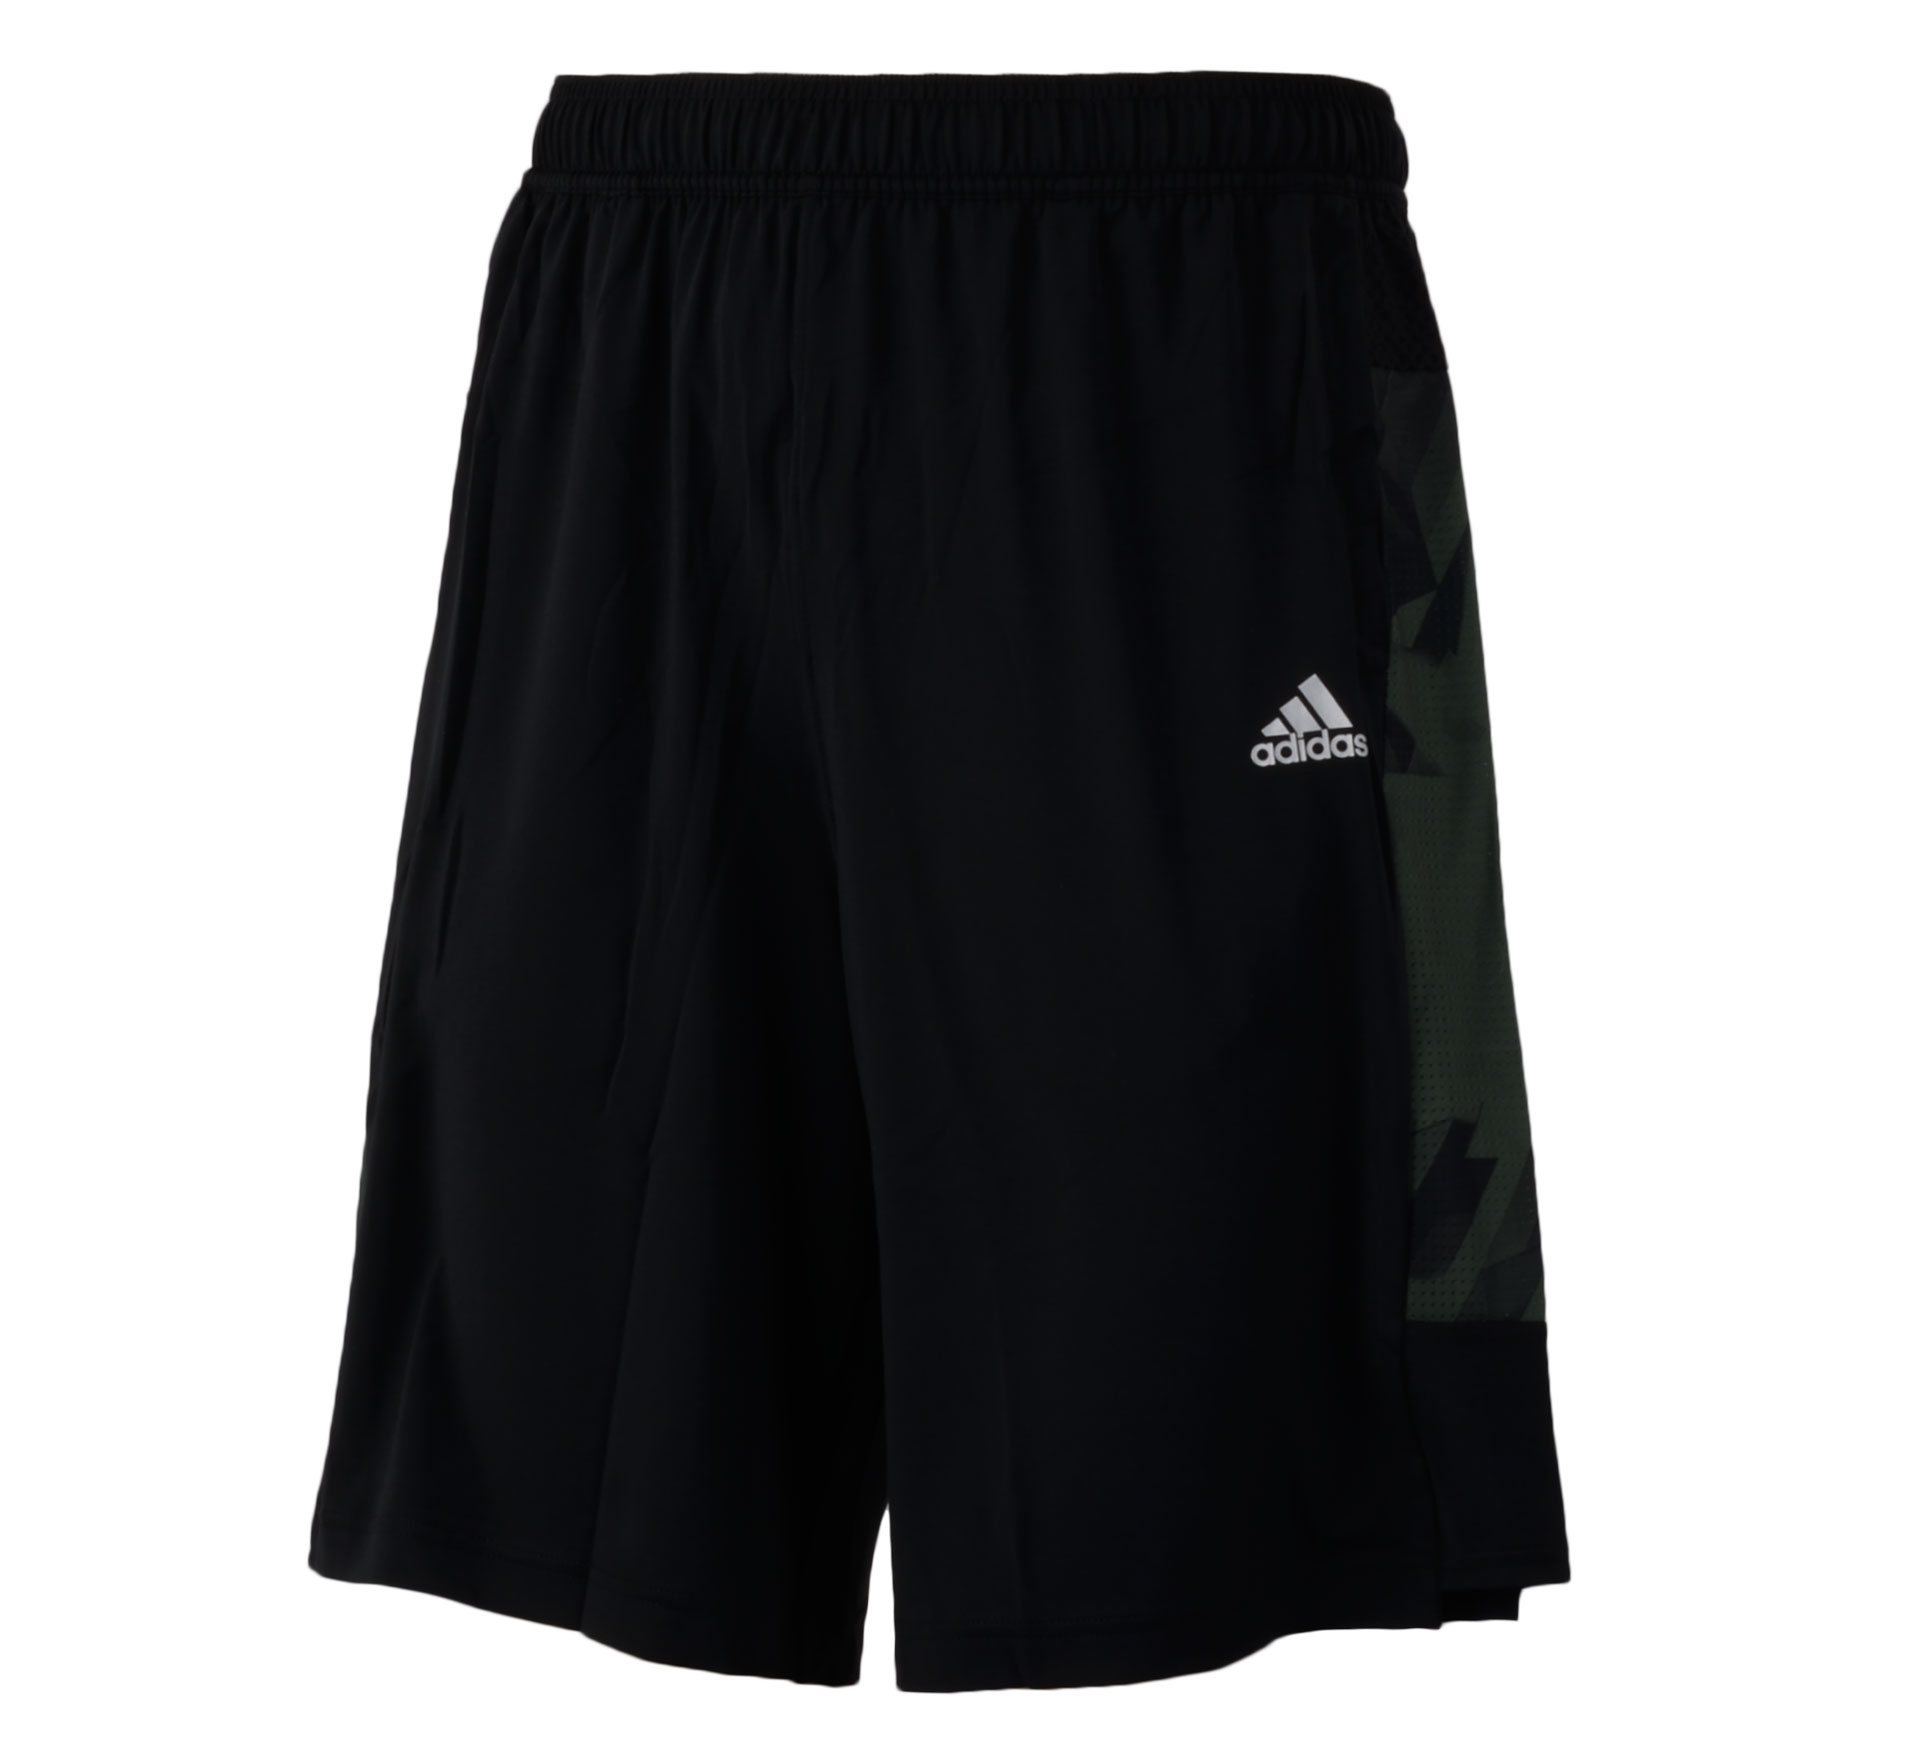 Adidas  Cool365 Long Short Heren zwart - groen